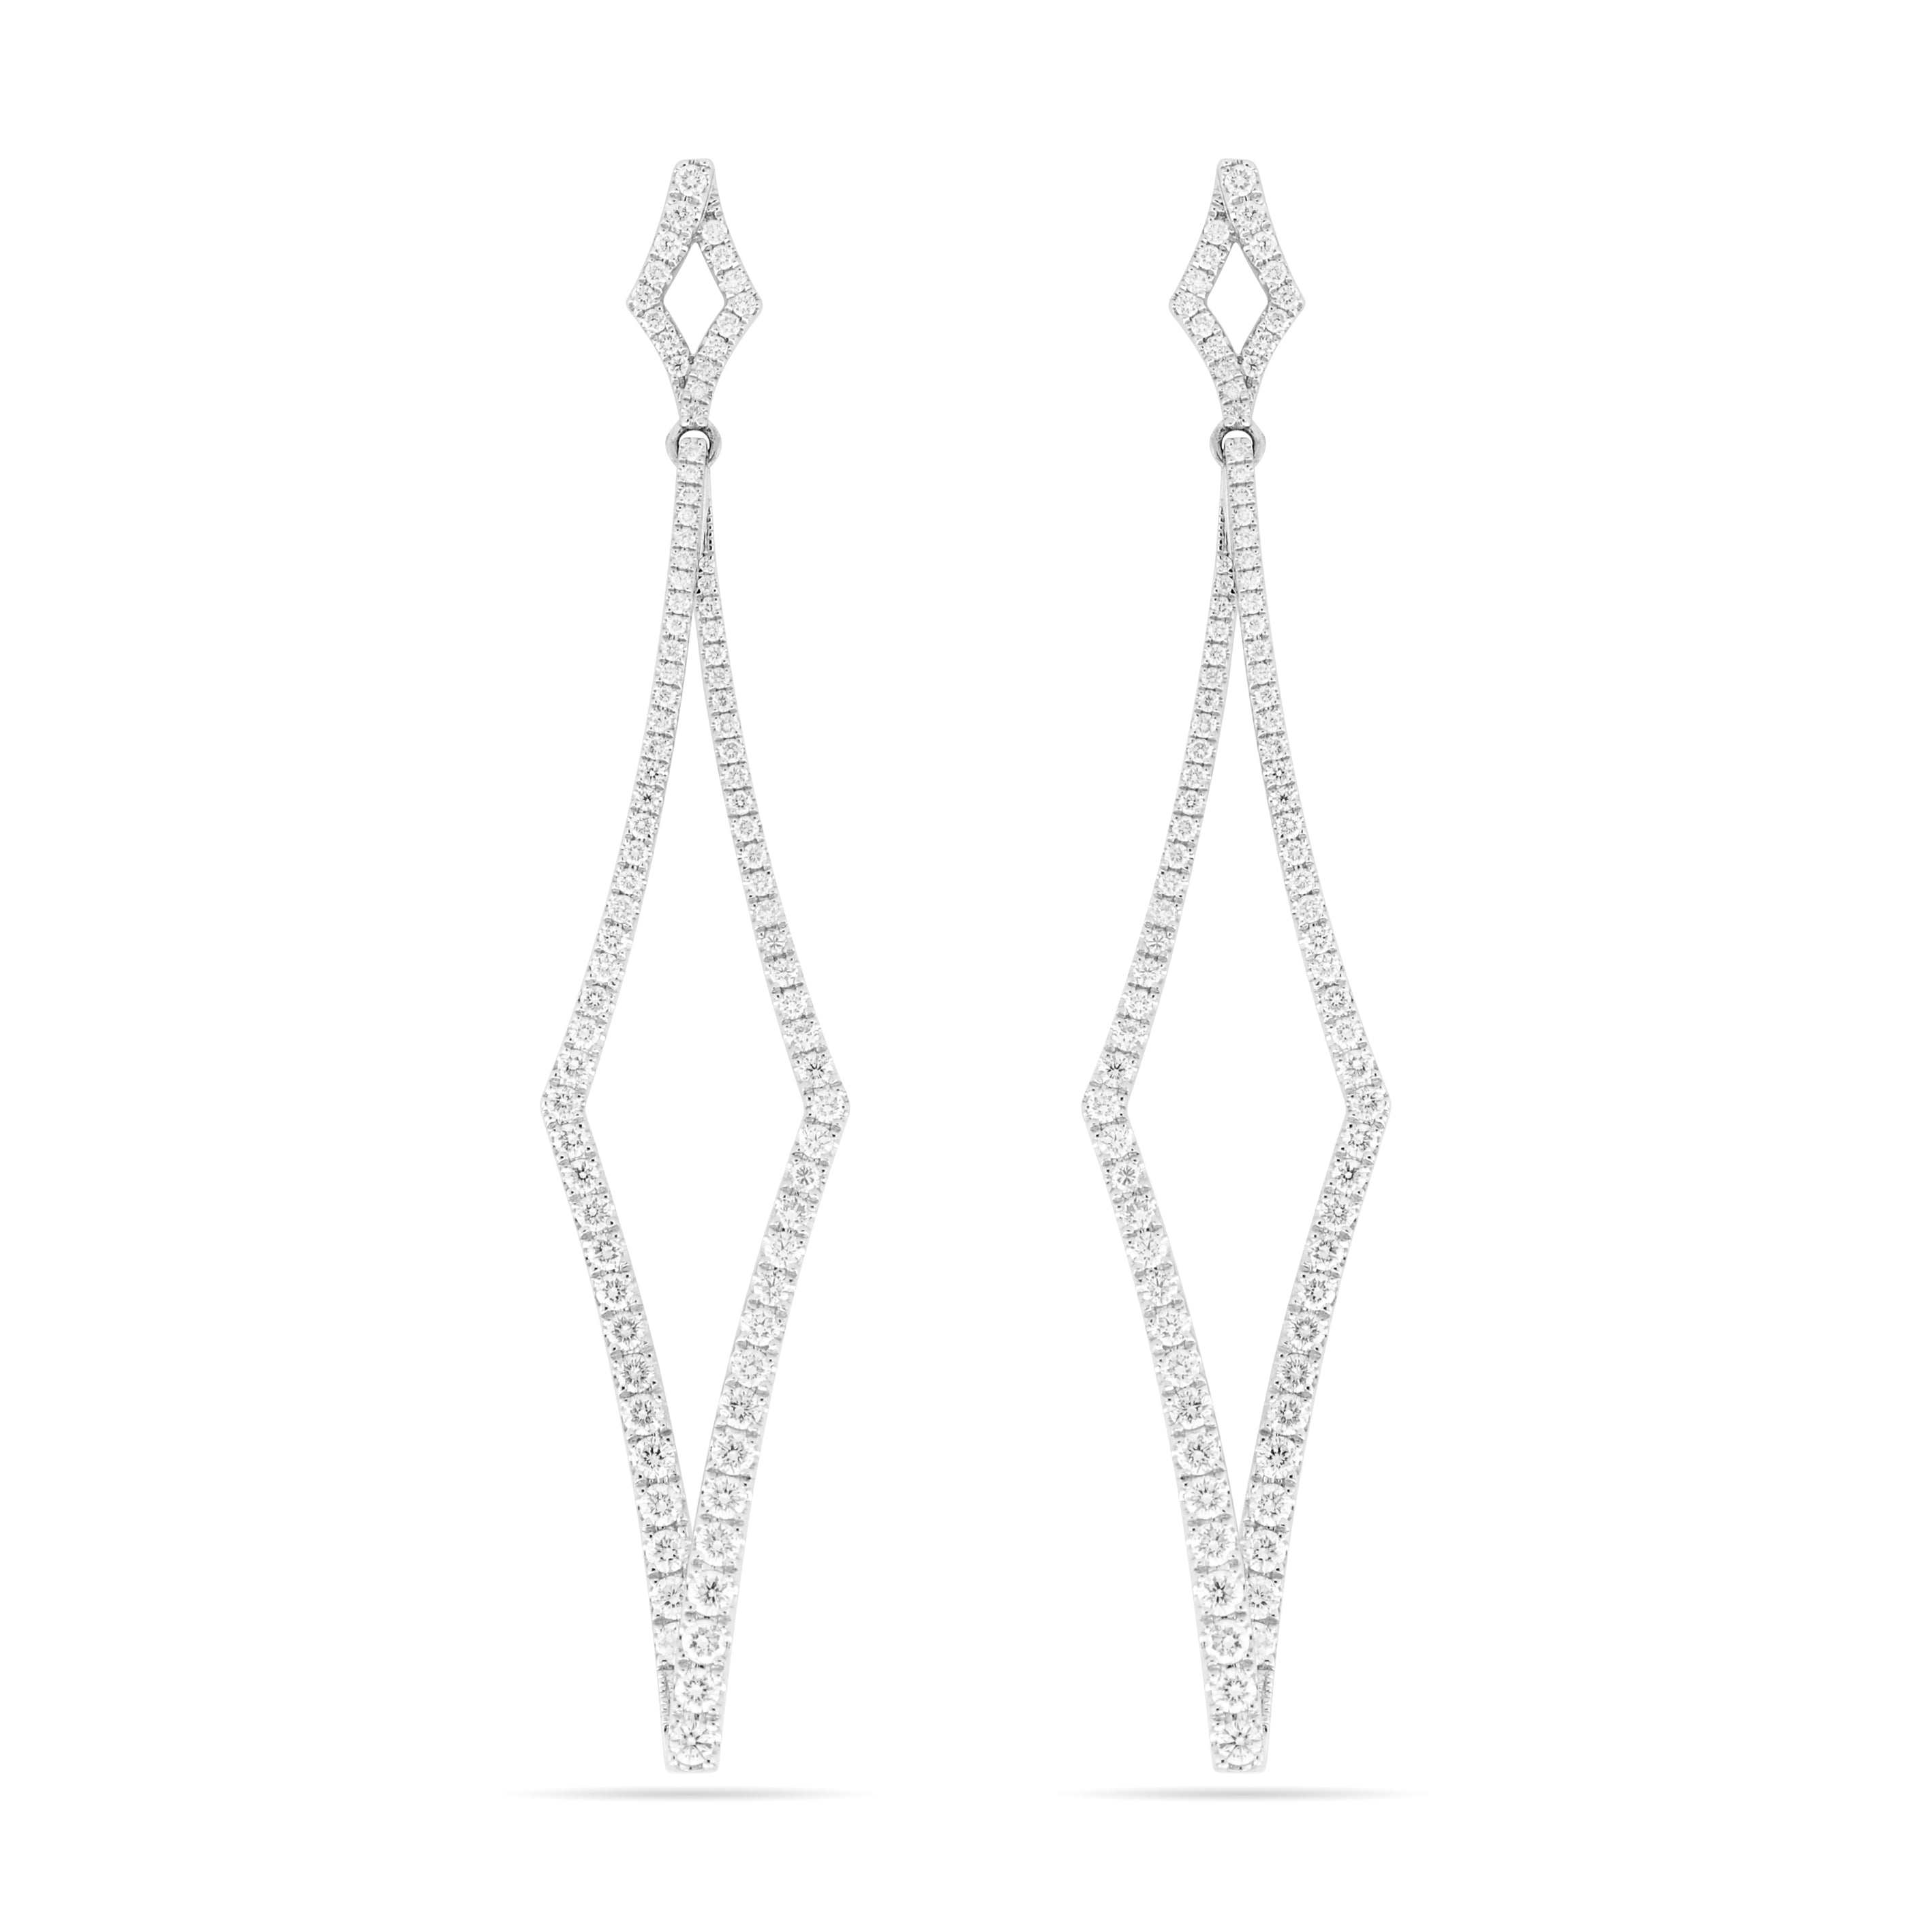 DIAMANT Earrings , Earrings - Fine Jewelry, RoCHIC, RoCHIC Fine Jewelry